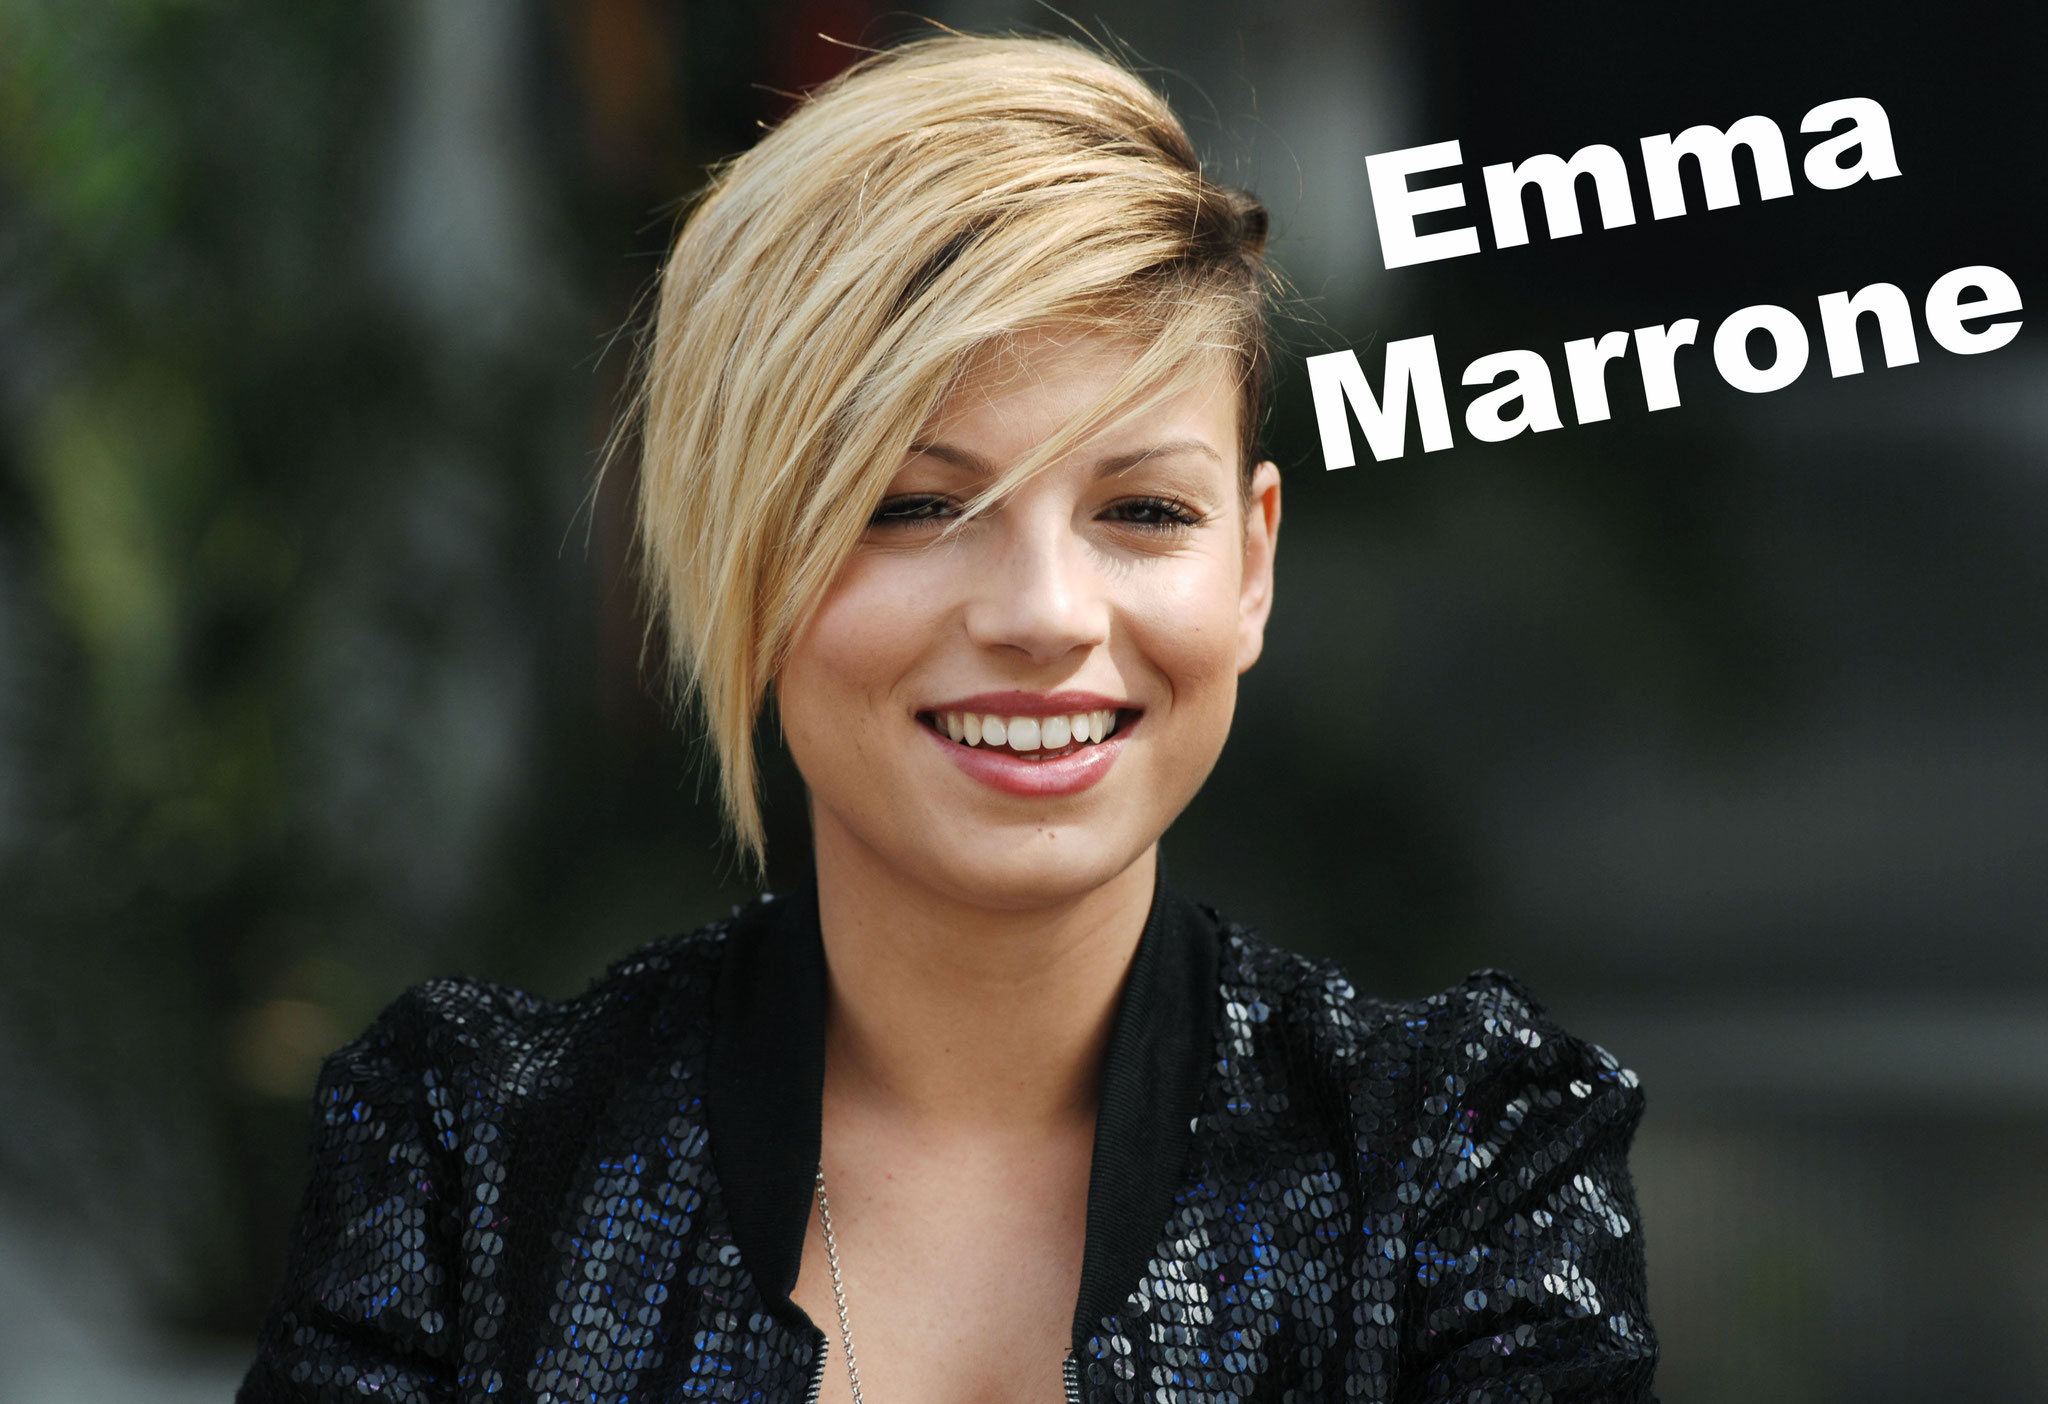 Emma Marrone, contatti Emma Marrone, management Emma Marrone, concerti Emma Marrone, agenzia Emma Marrone, ingaggio Emma Marrone, roster Emma Marrone, roster, 2018, booking Emma Marrone, booking, roster,